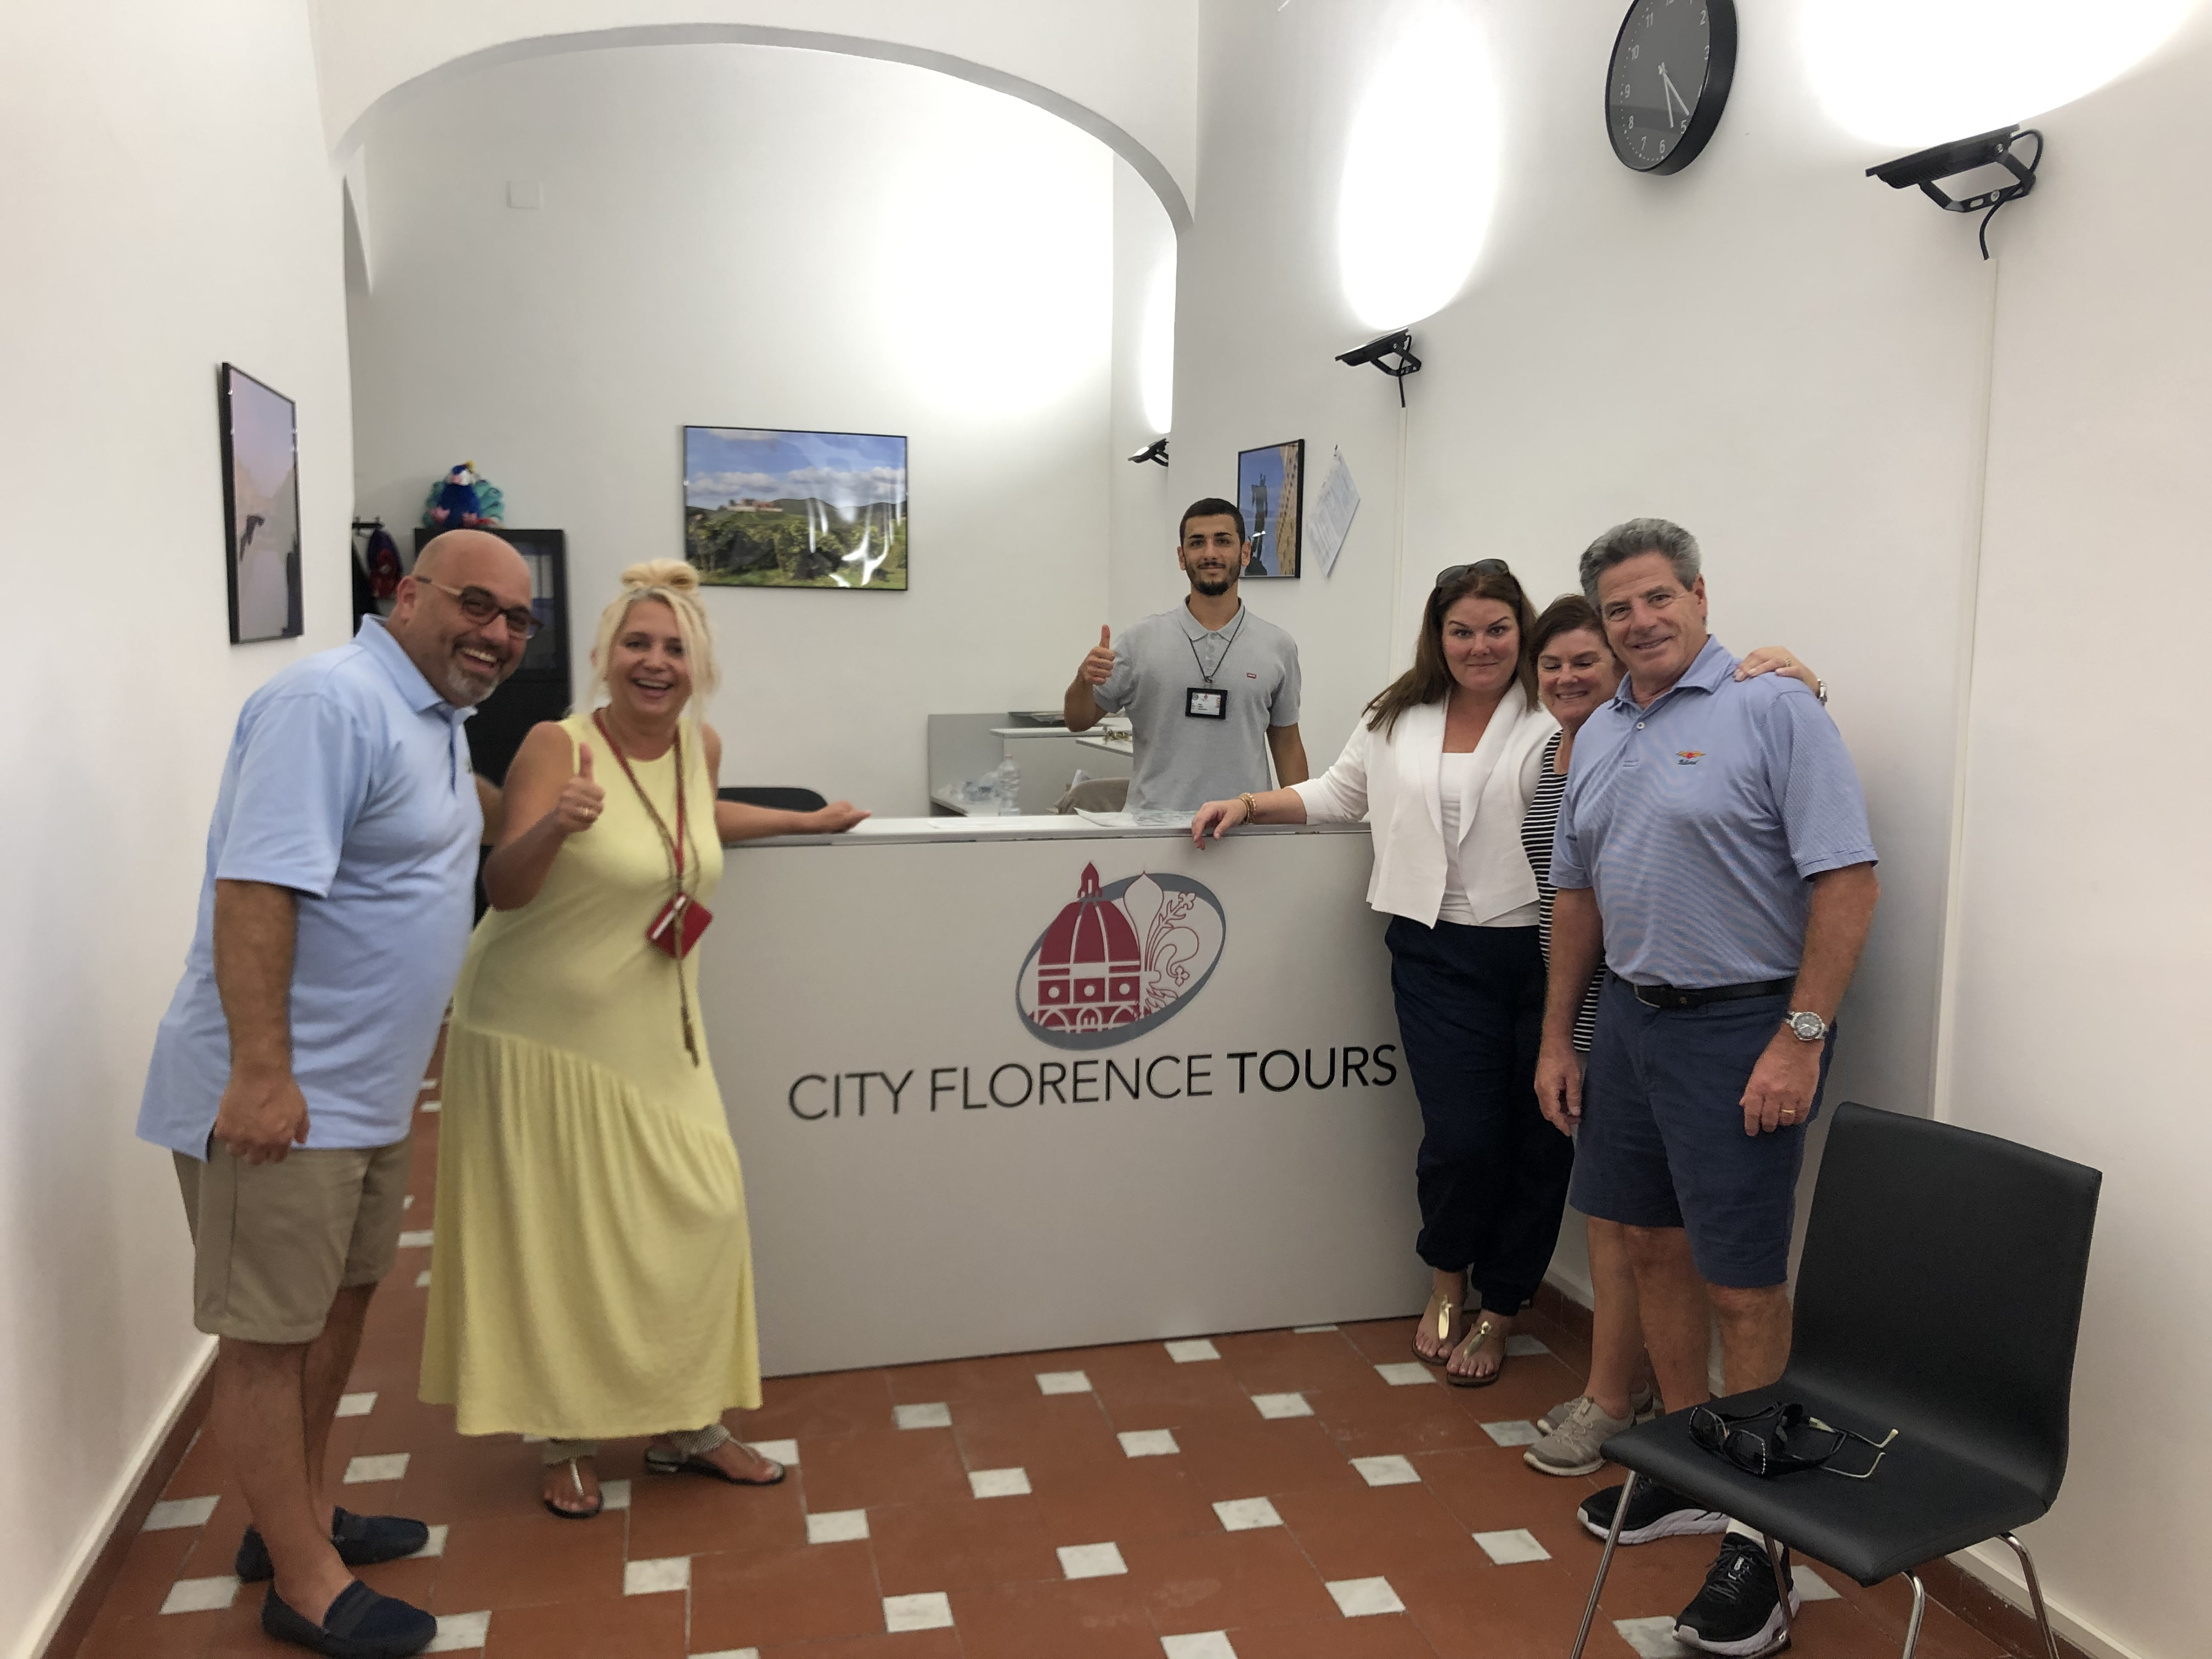 City Florence Tours